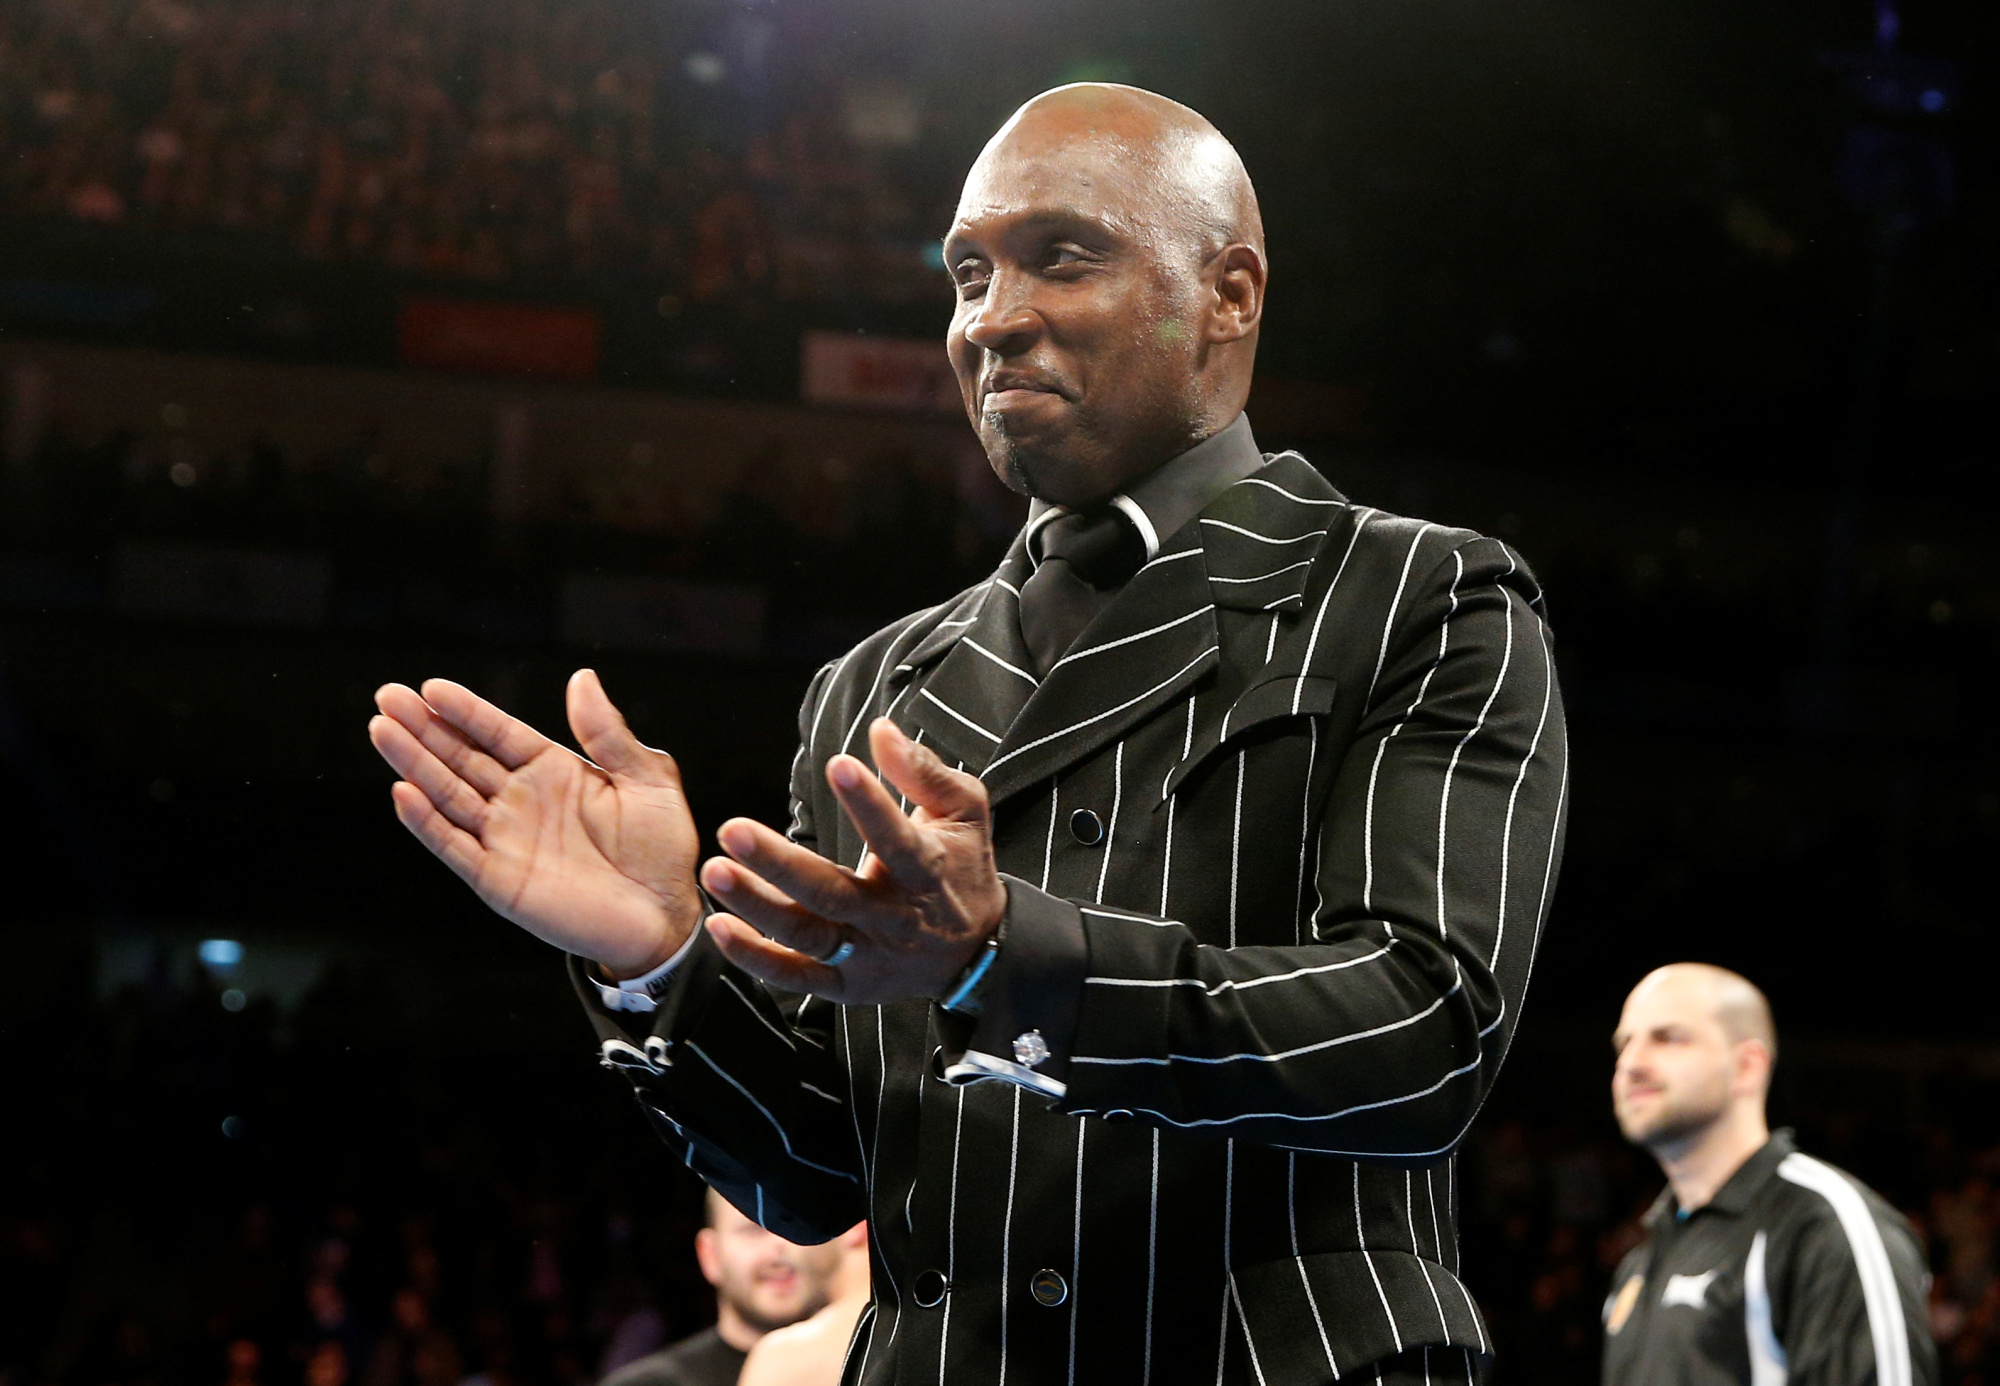 Former middleweight champion Nigel Benn is seen in a September 2016 file photo. | REUTERS